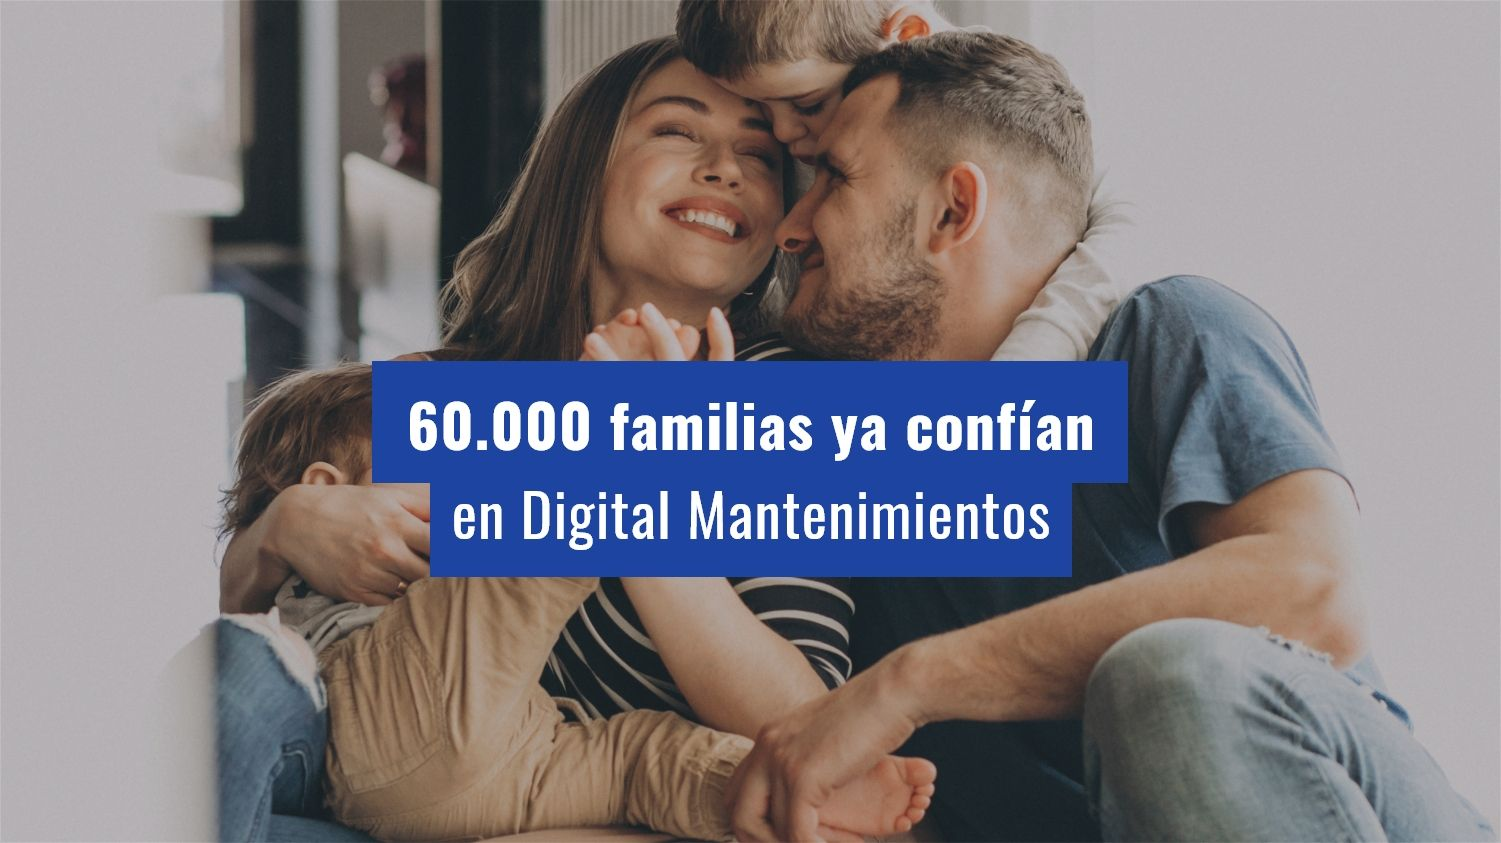 Digital Mantenimientos